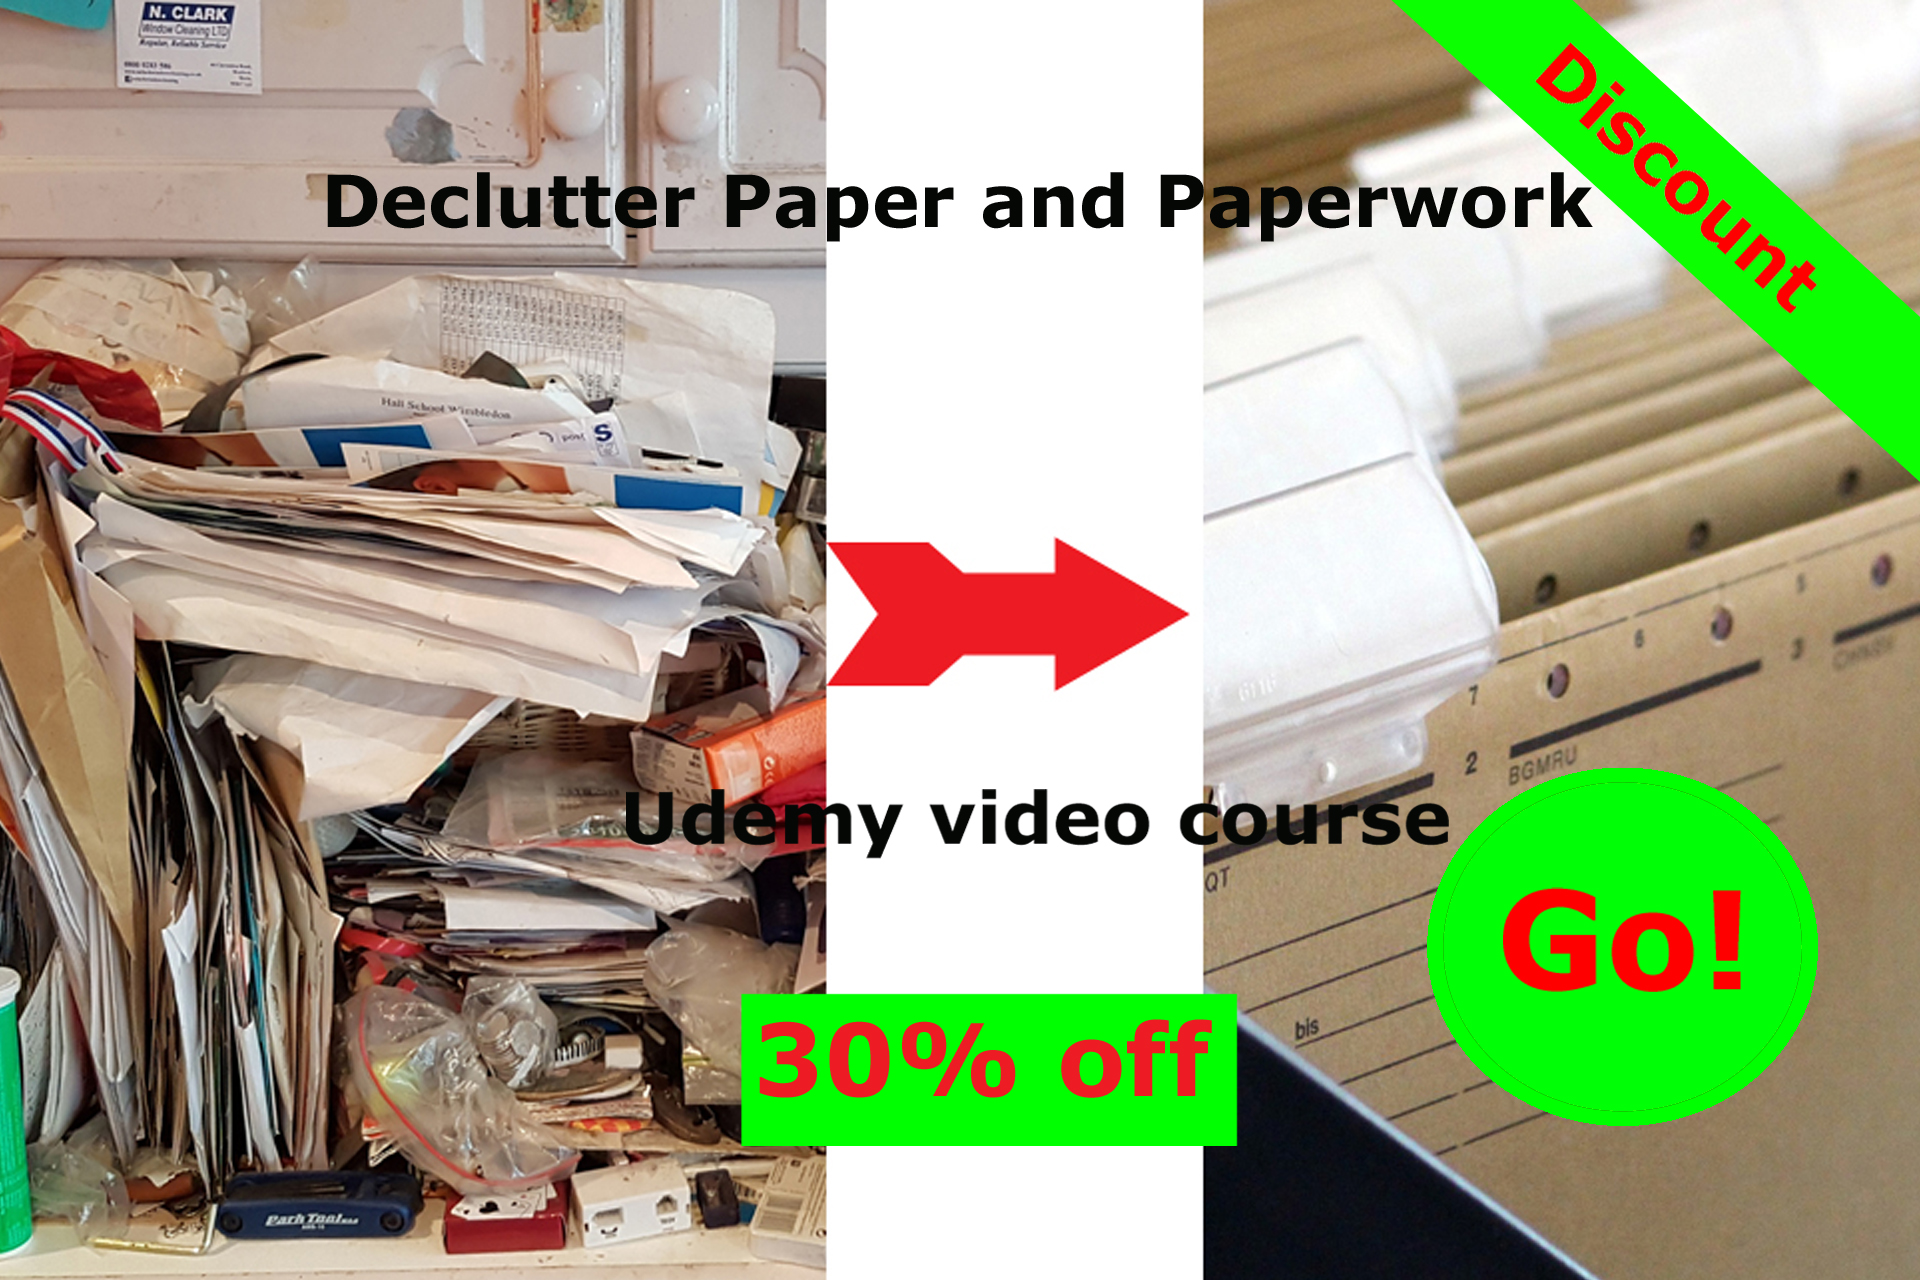 Click here for 30% off Declutter Paper and Paperwork video course